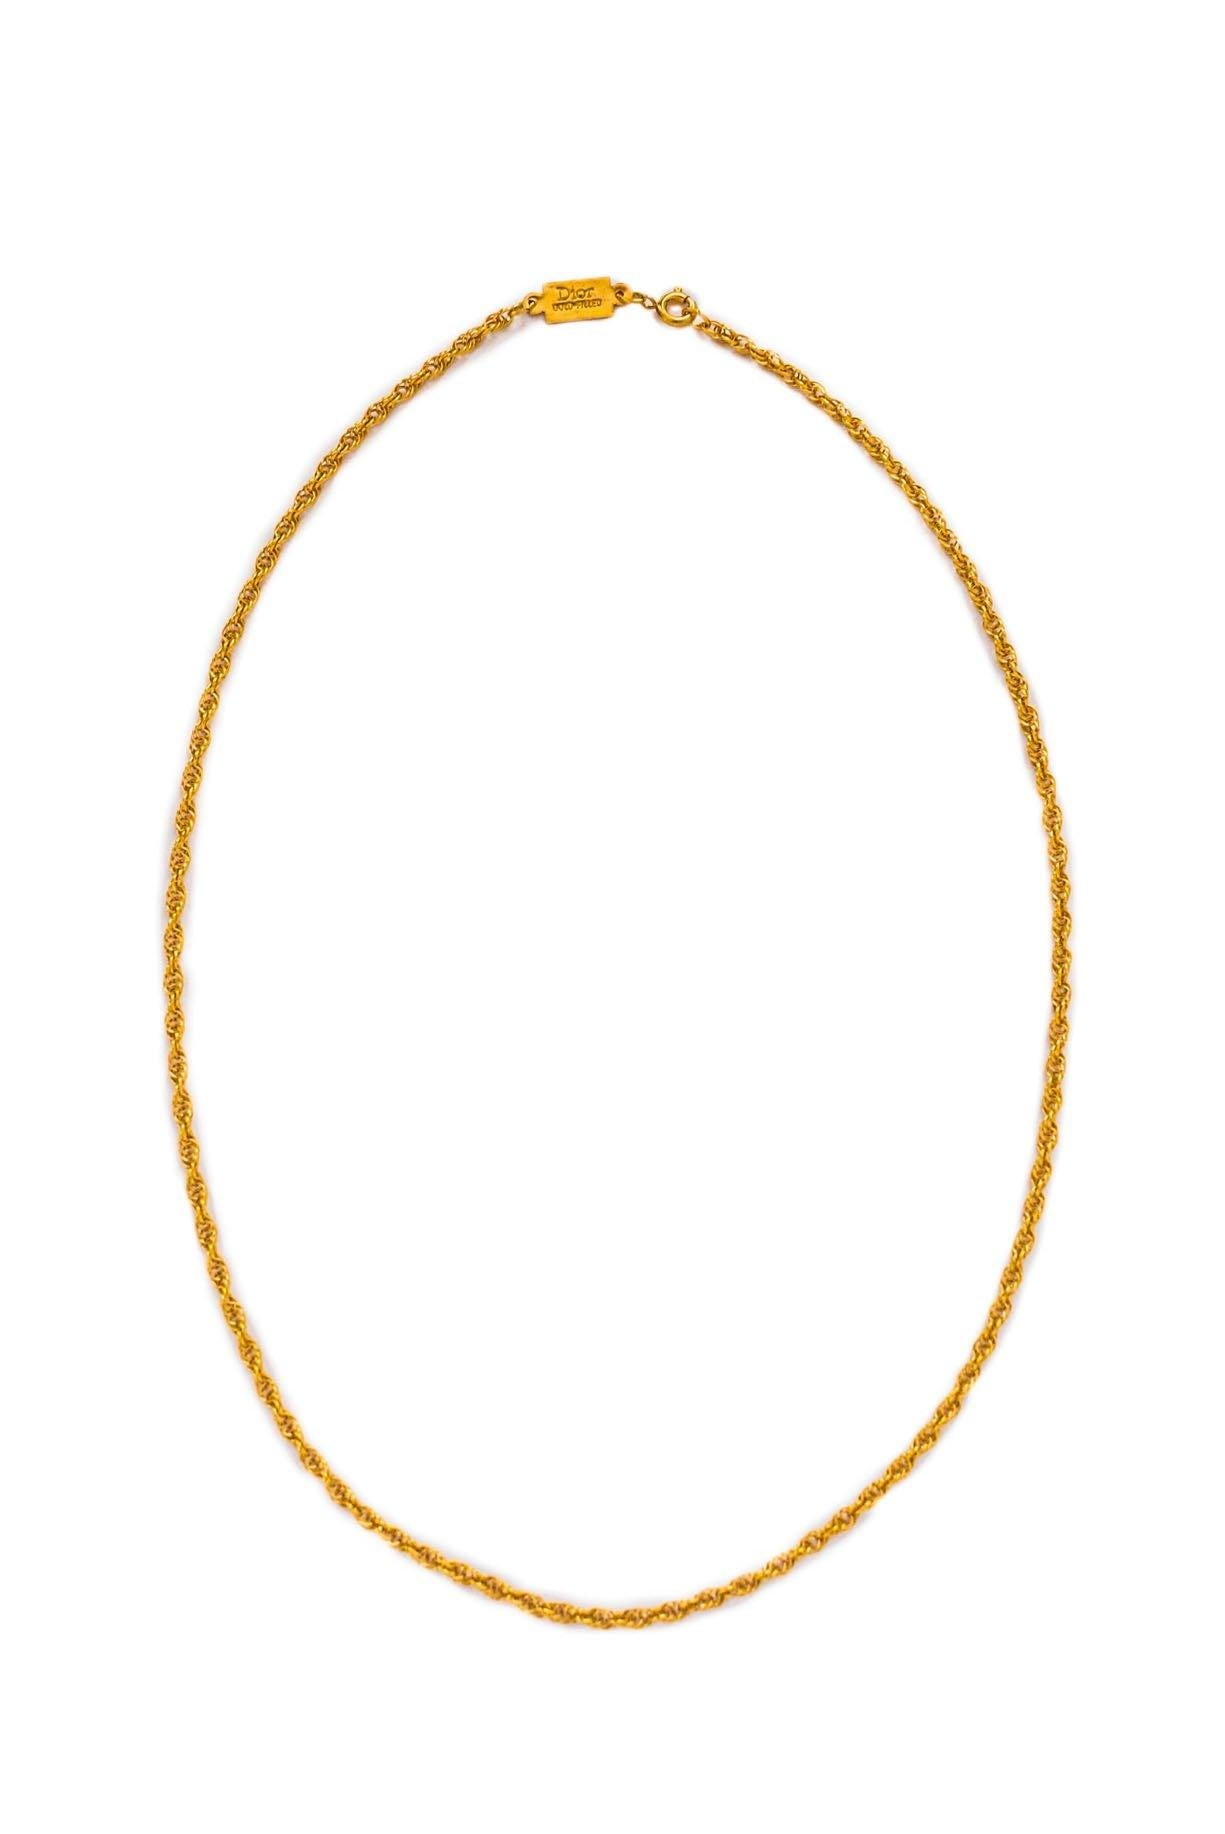 Dainty Rope Chain Necklace - Sweet & Spark